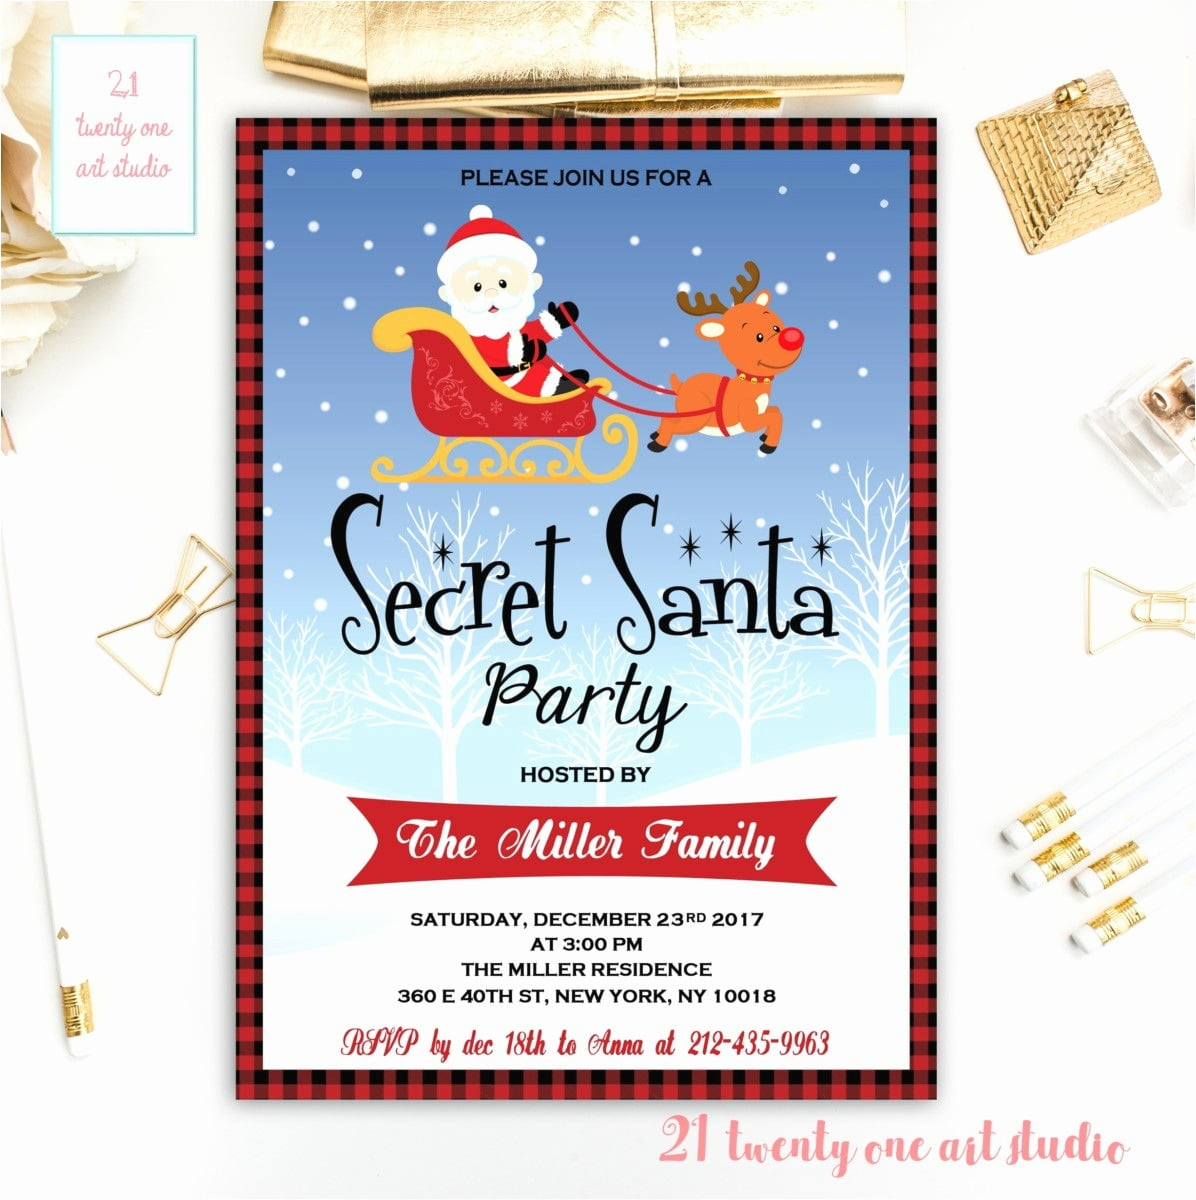 Housewarming Invitation Template Free Download Beautiful